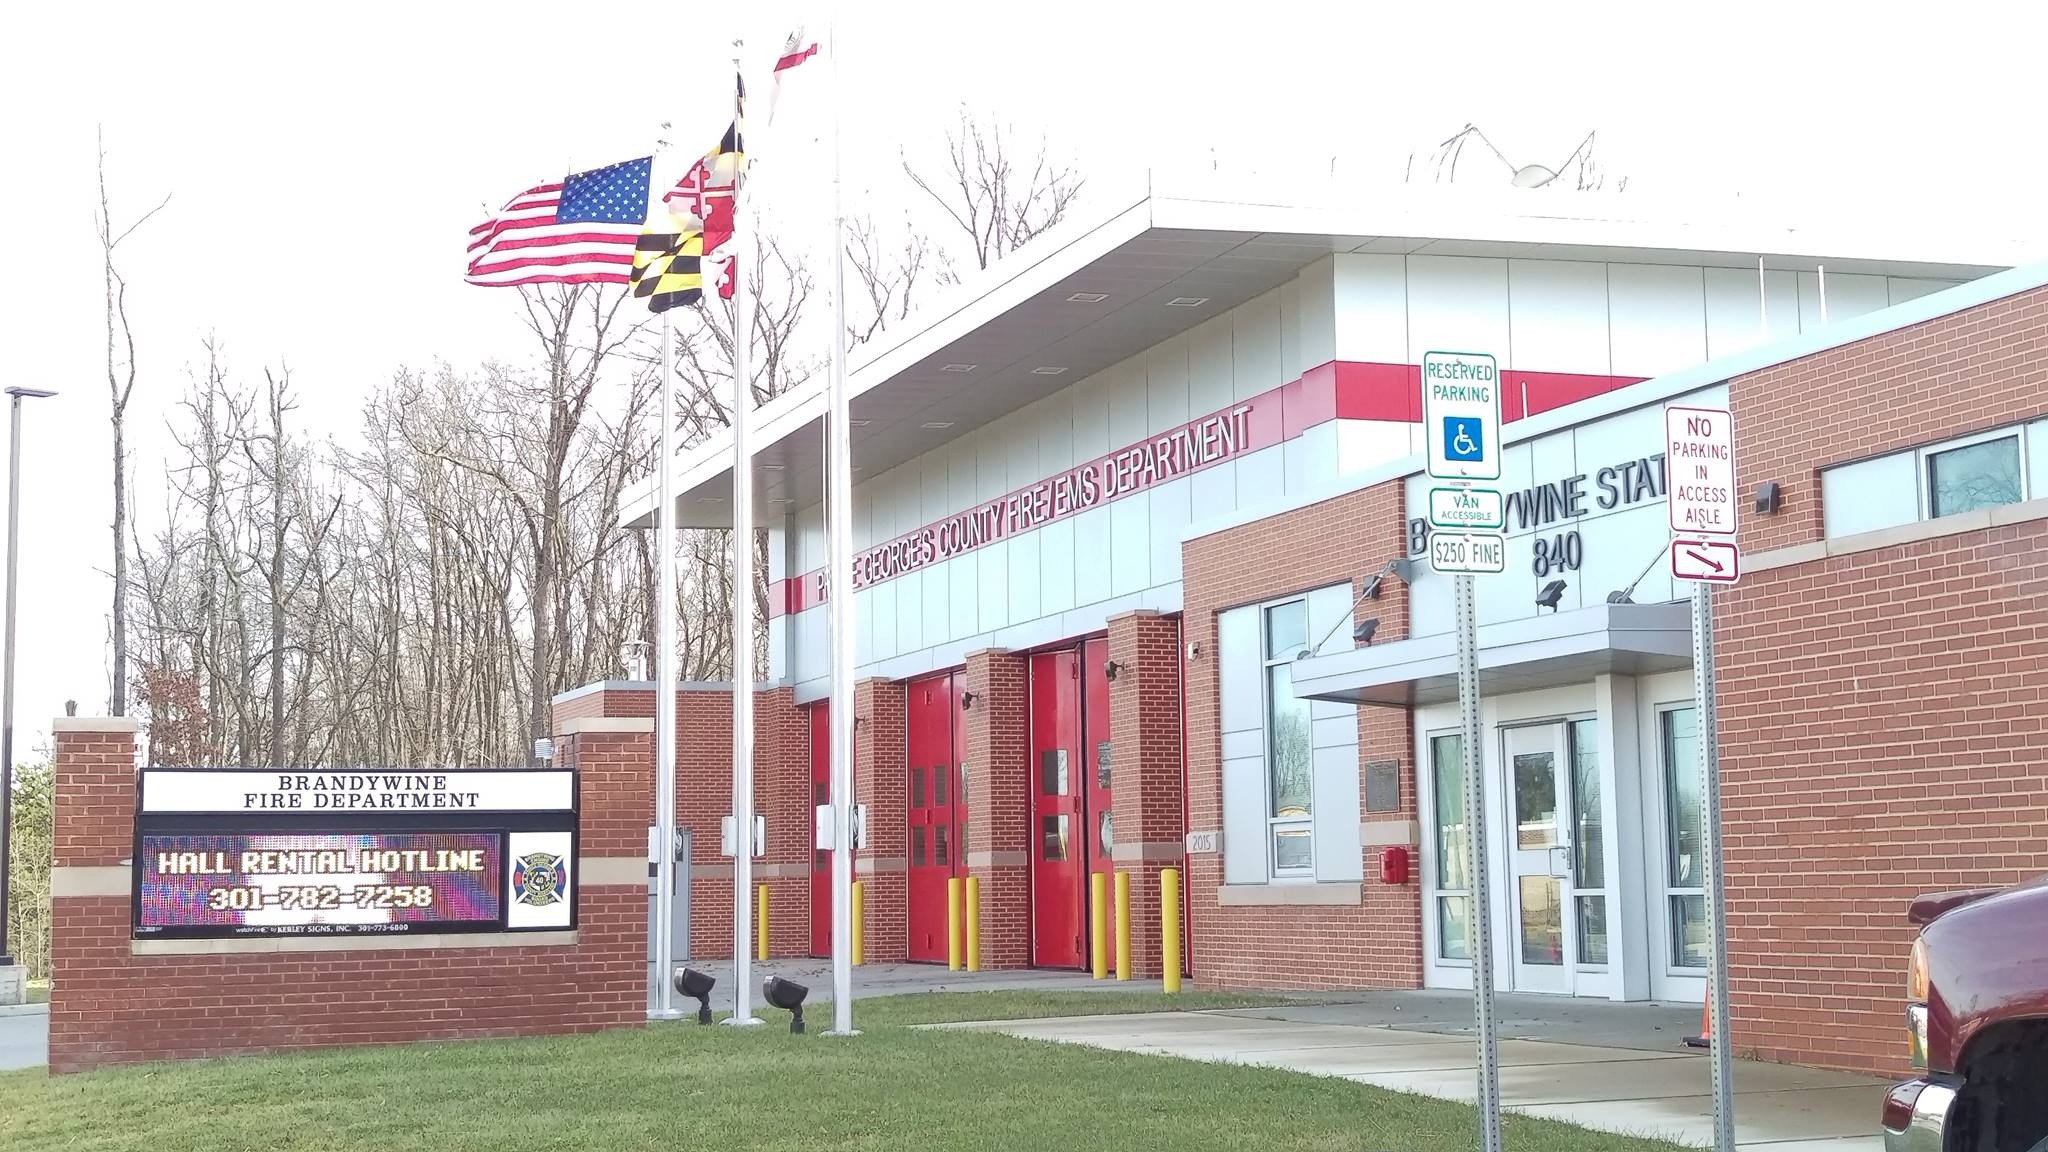 Volunteer Fire Department of Brandywine